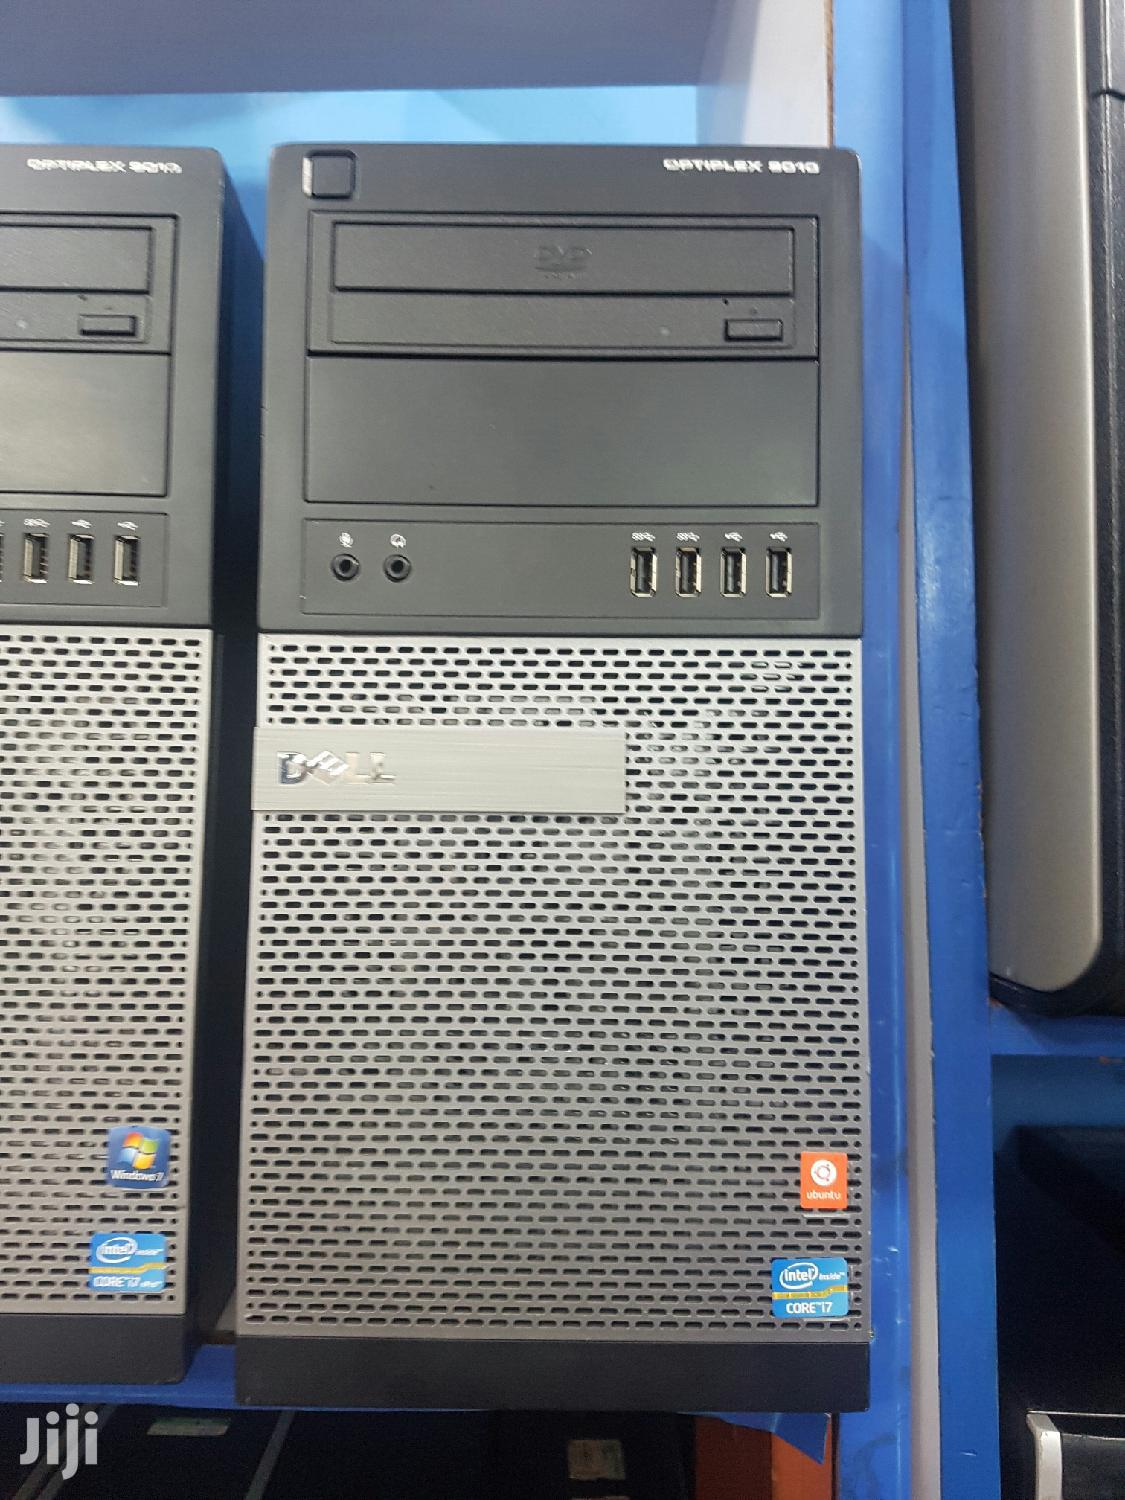 Dell Optiplex 9010 core i7 hdd 500gb | Laptops & Computers for sale in Kampala, Central Region, Uganda